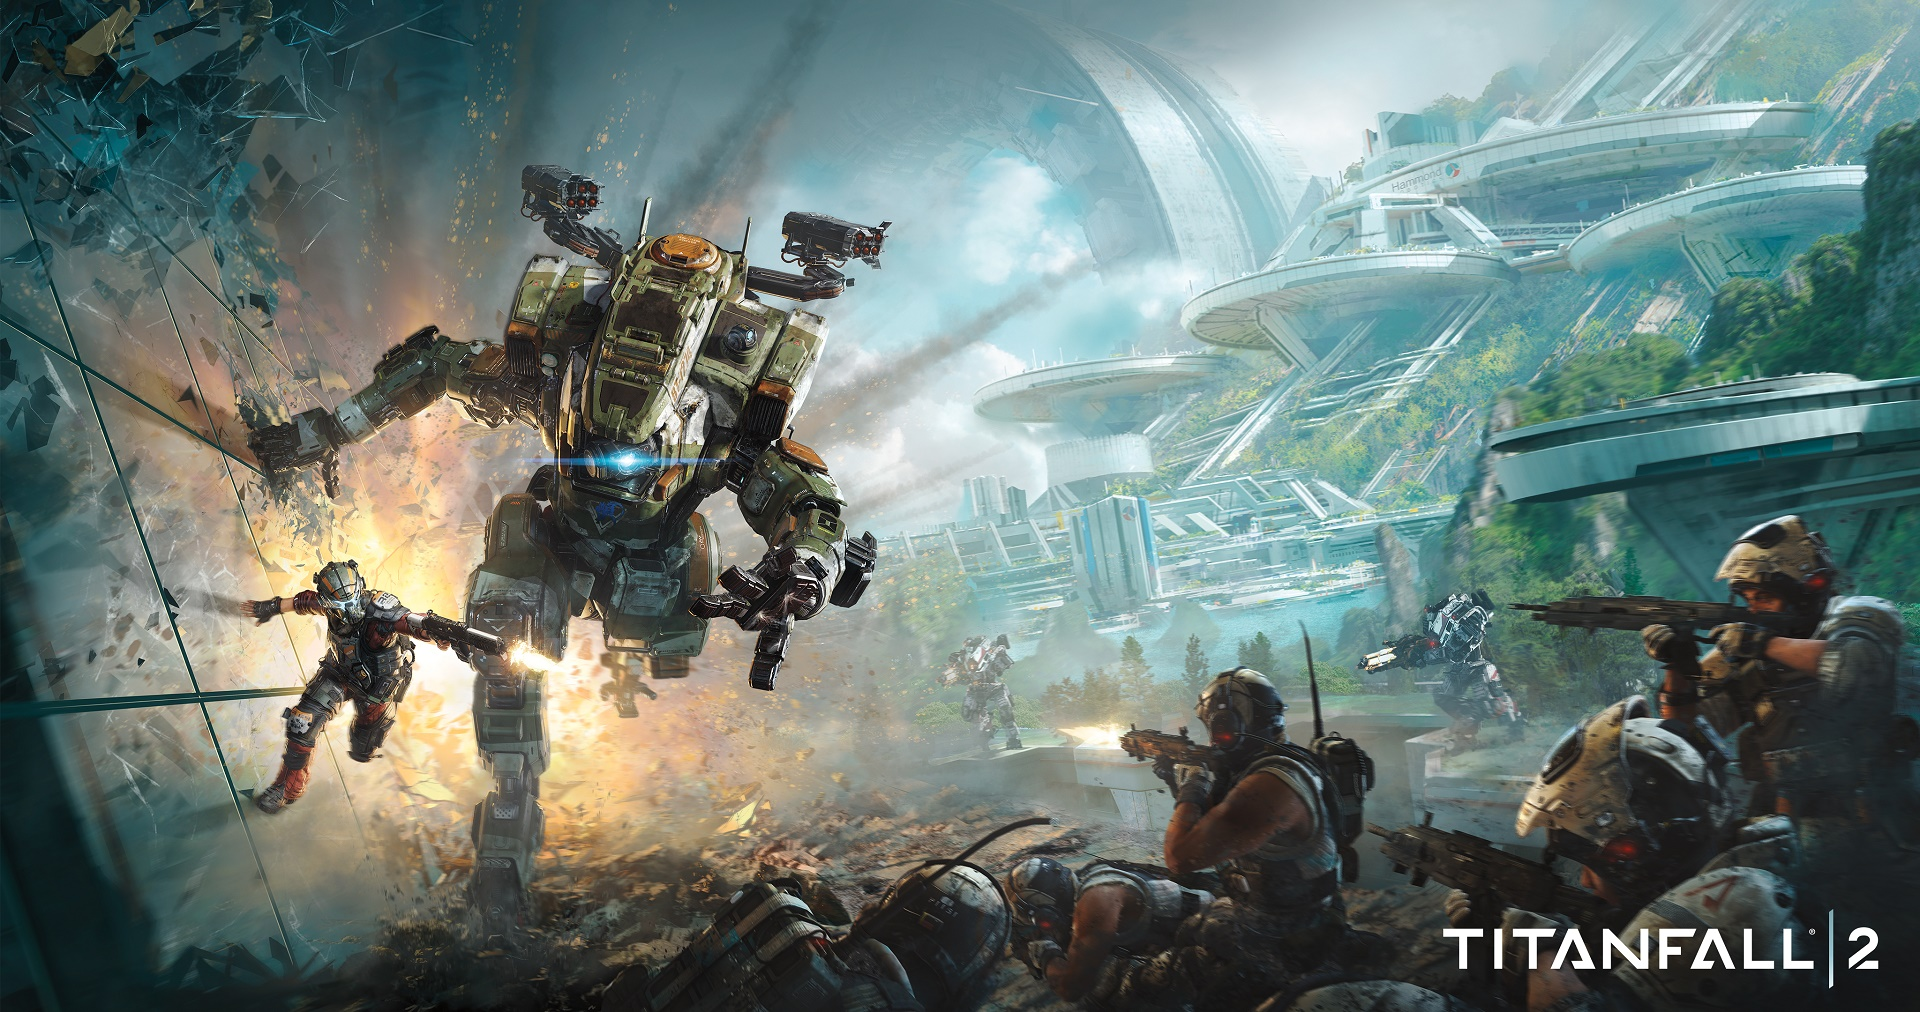 Hd Phone Wallpapers Fall Fondos De Titanfall 2 Wallpapers Gratis